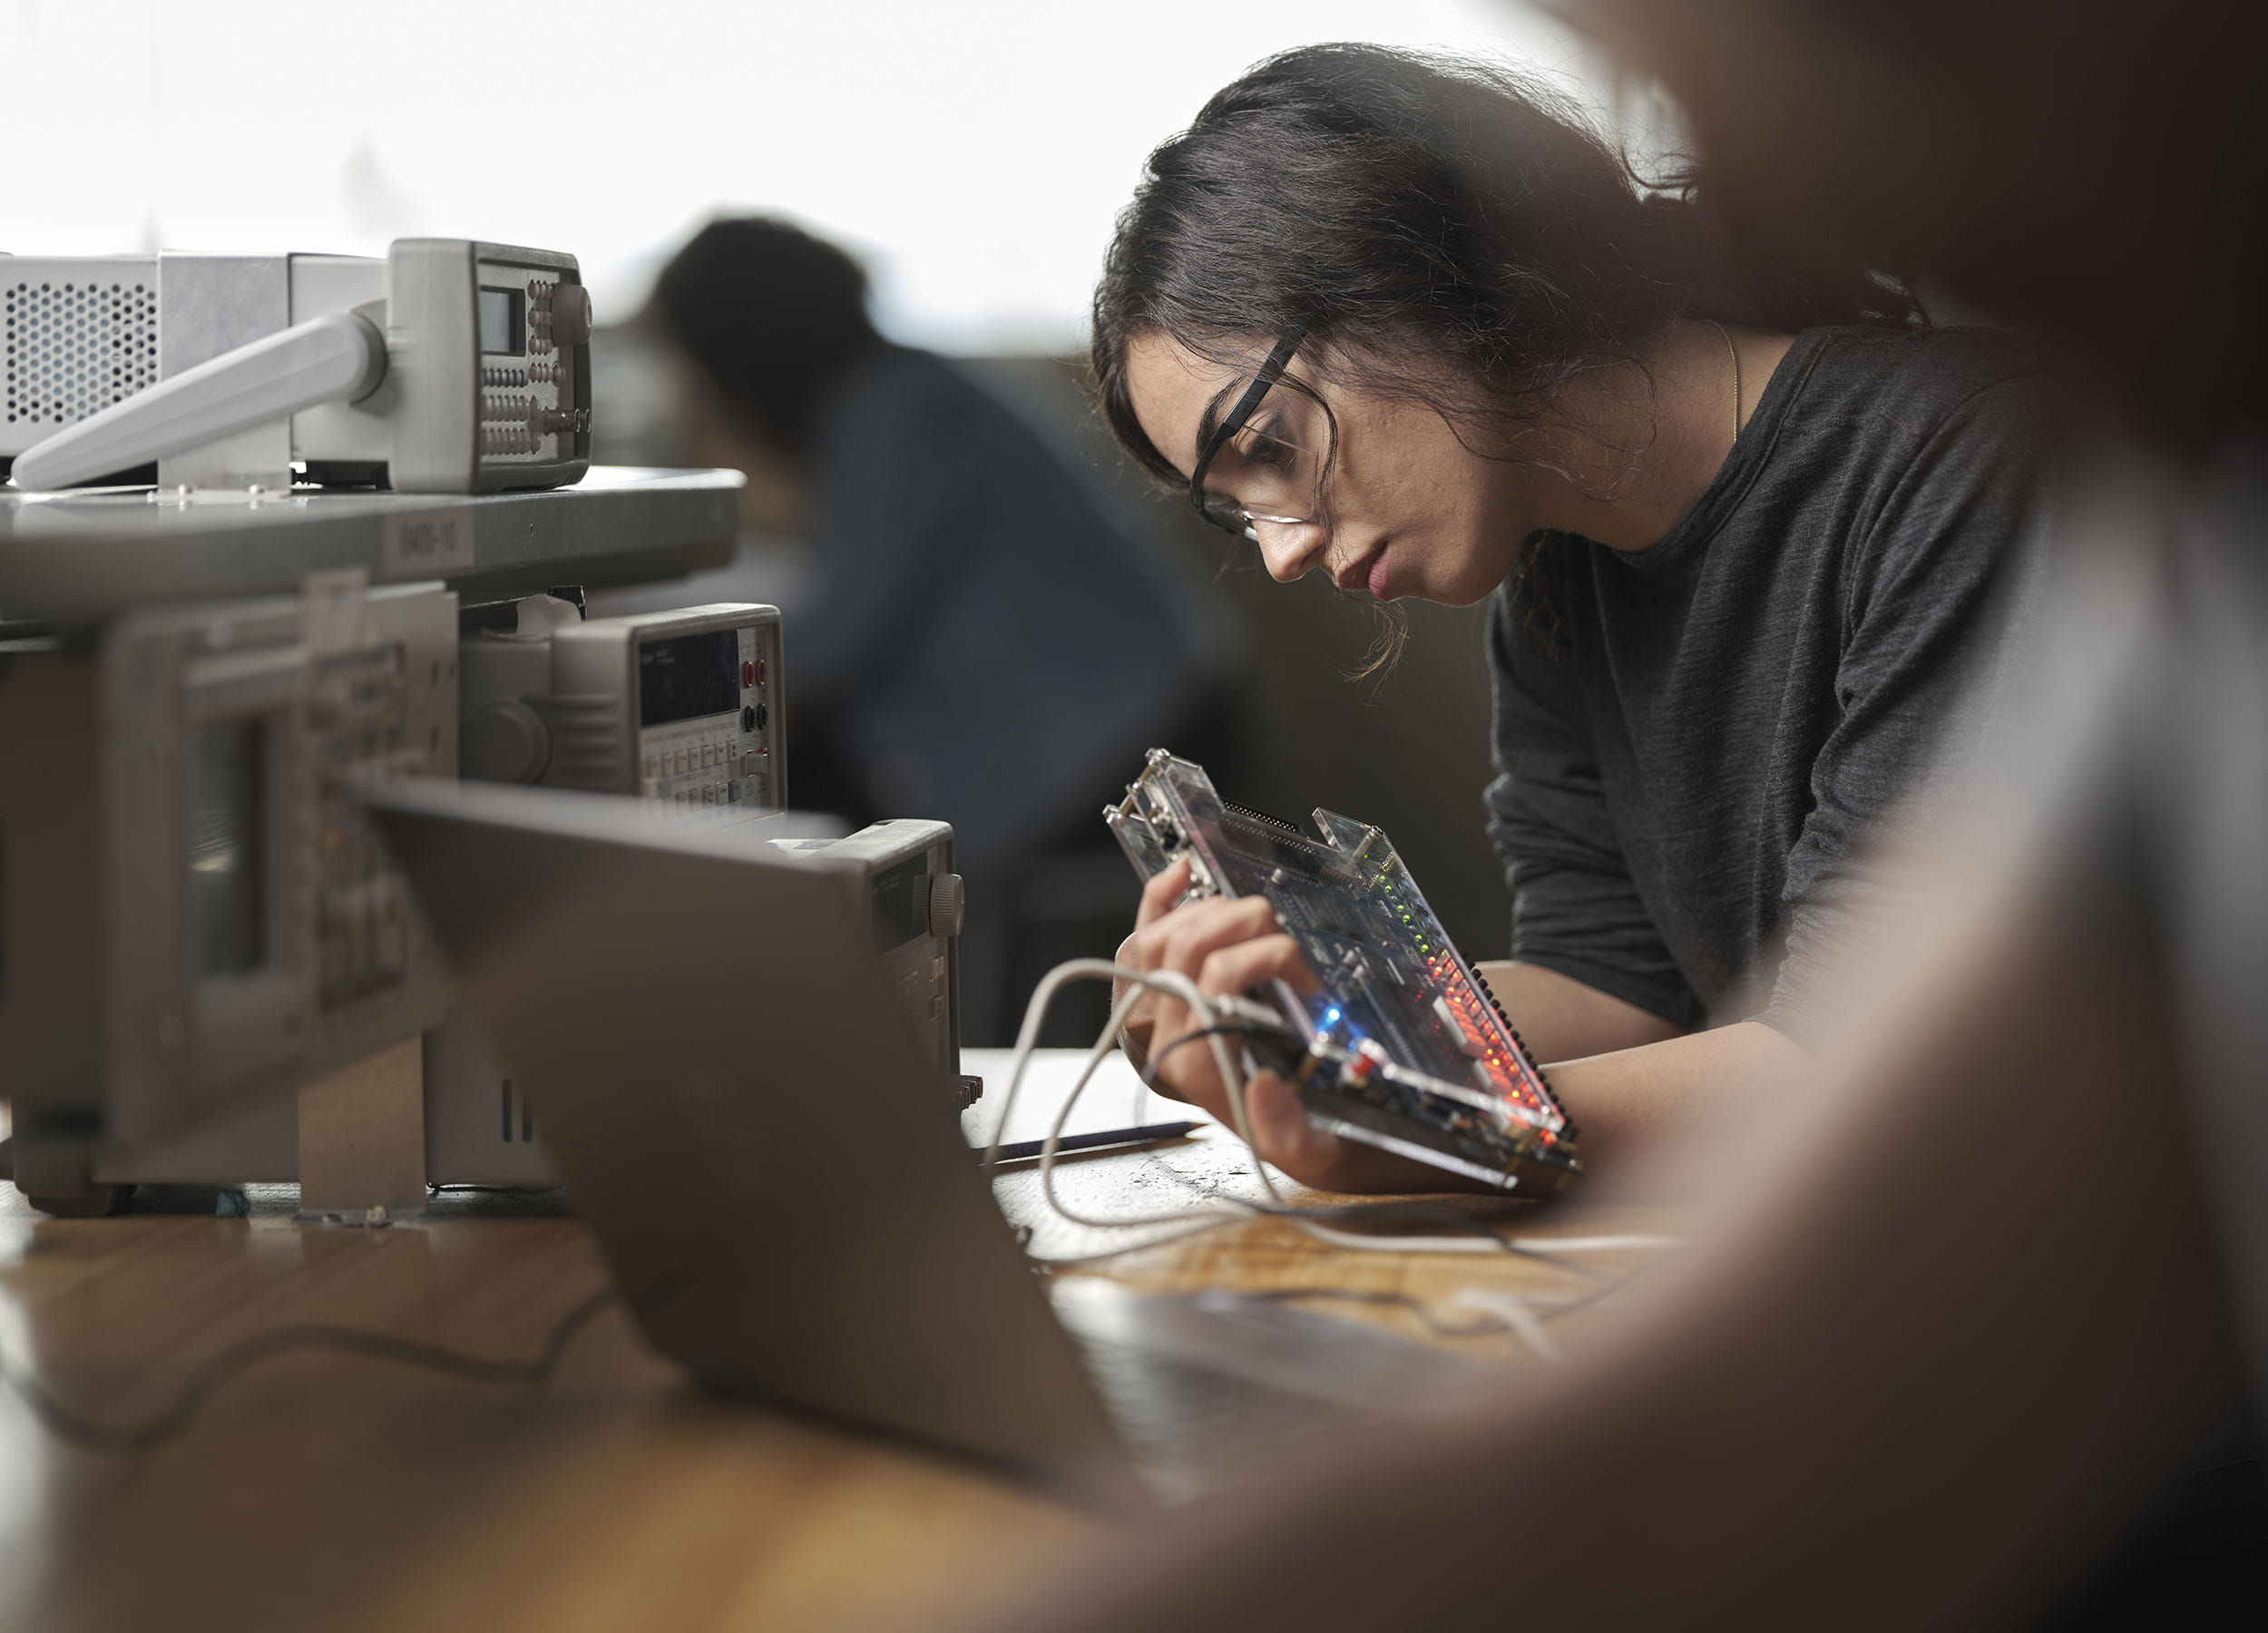 An electronics engineering technician student working in a lab